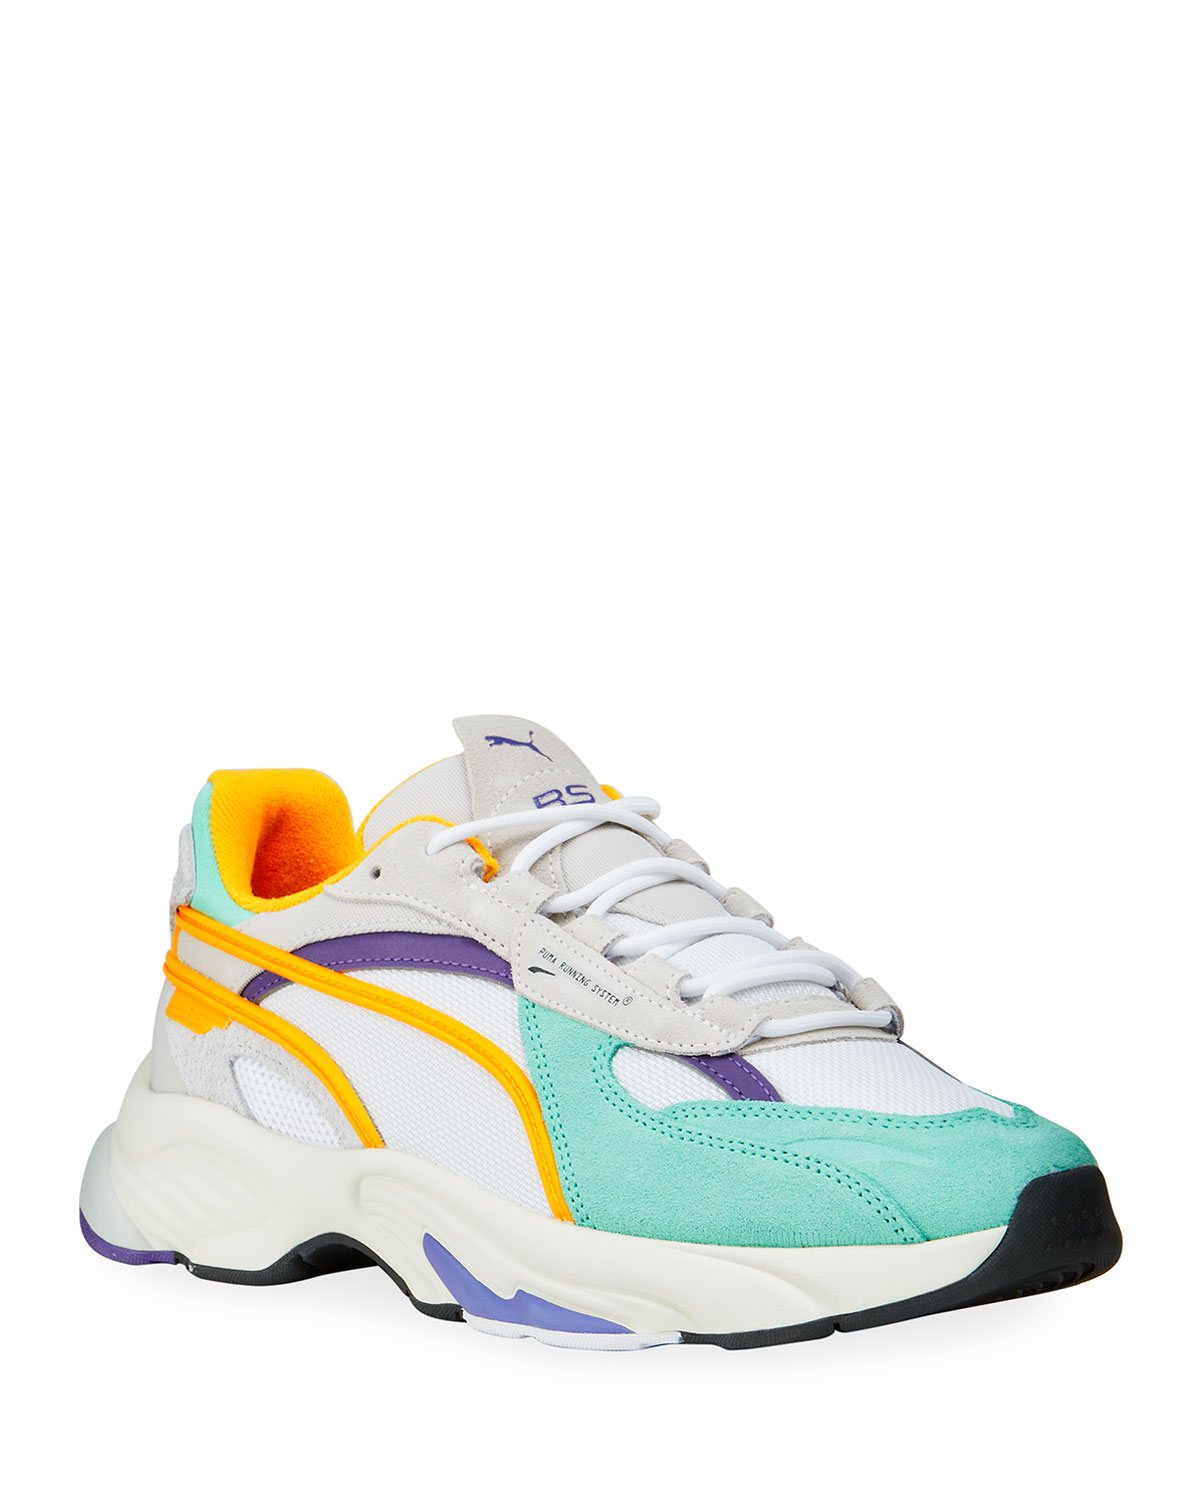 Puma MEN'S RS-CONNECT DRIP COLORBLOCK SNEAKERS